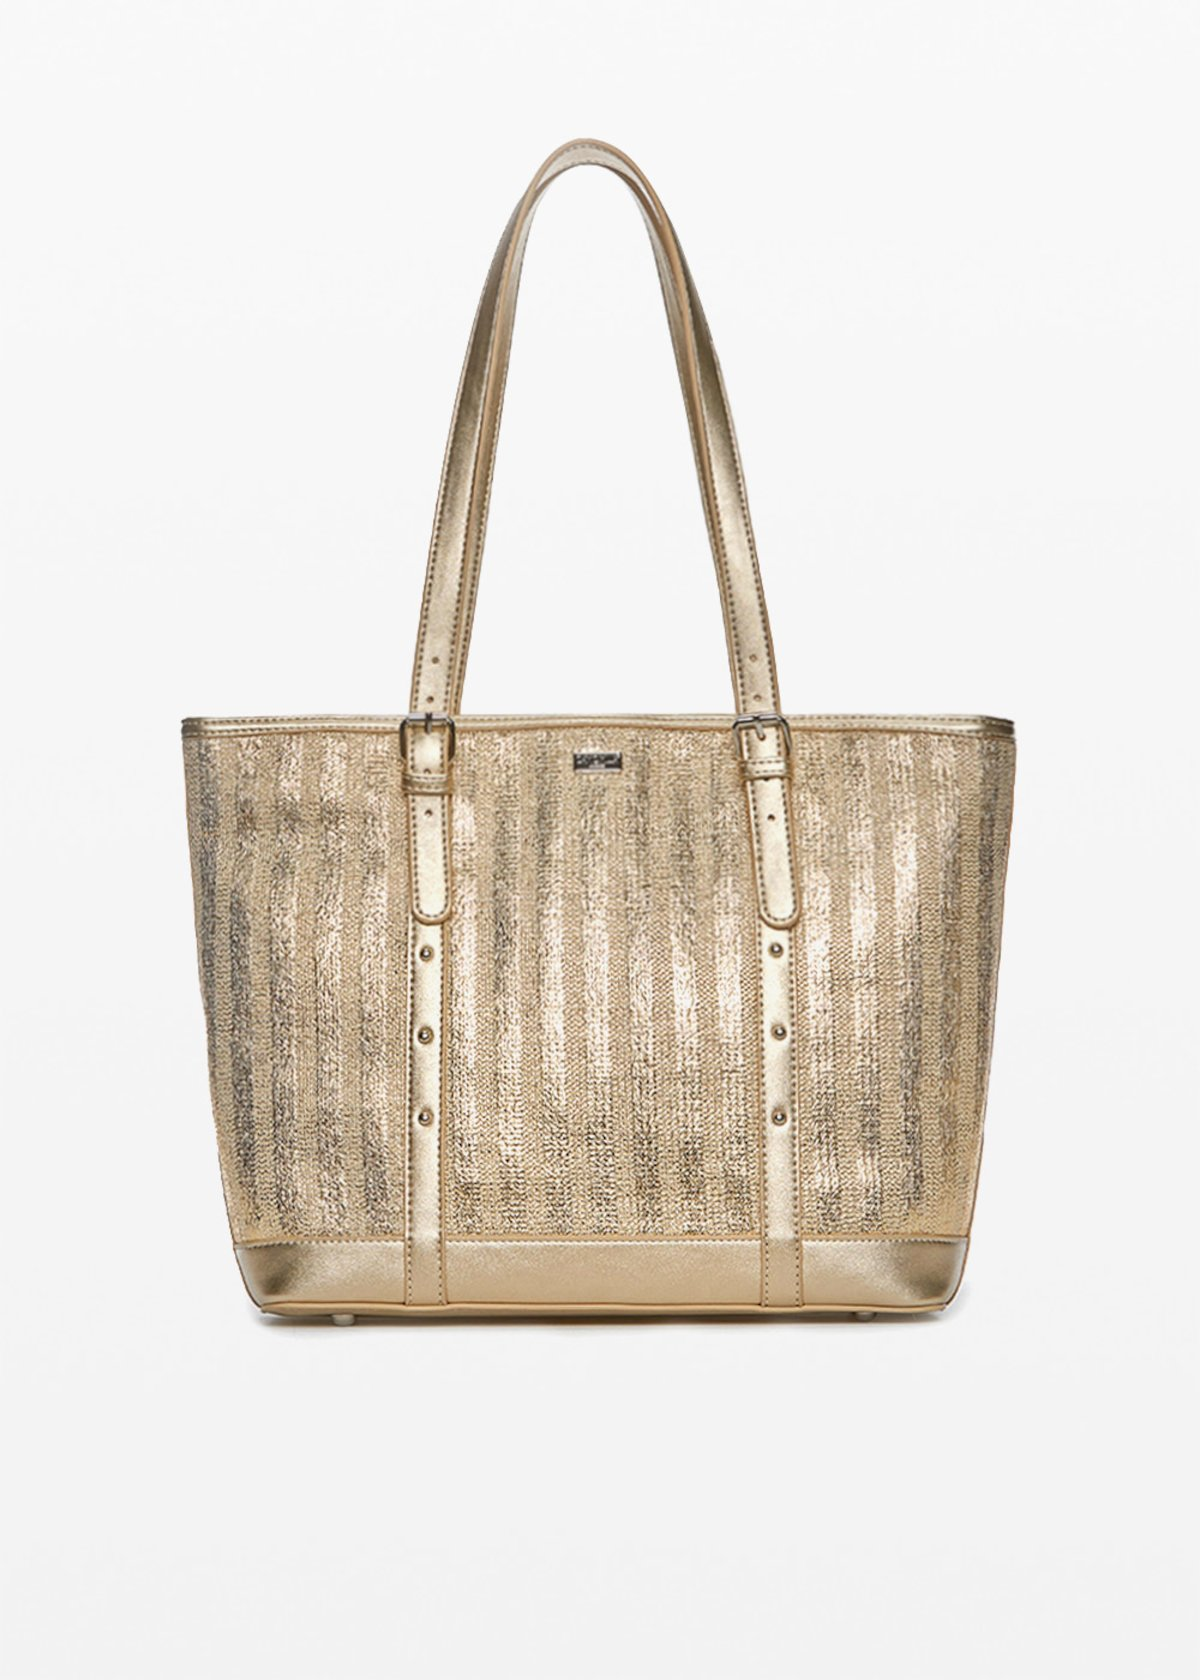 Faux-leather and straw Bicky shopping bag in silver plated straw - Gold - Woman - Category image